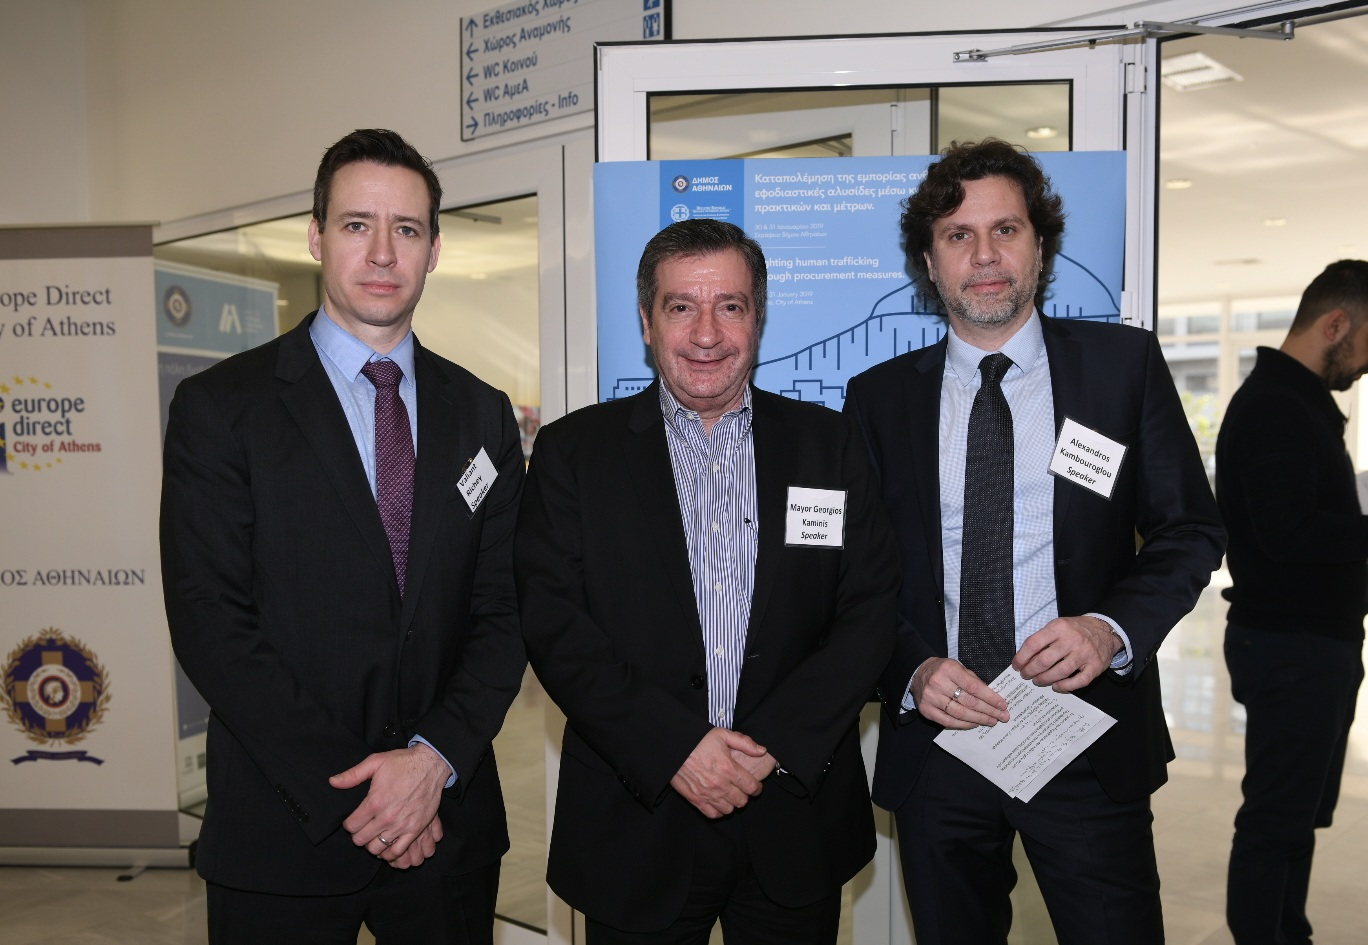 Mayor Kaminis (middle), with Valiant Richey, OSCE Acting Co-ordinator for Combating Trafficking in Human Beings (left) and Alexandros Kambouroglou, Executive Director of the Athens Partnership (right).